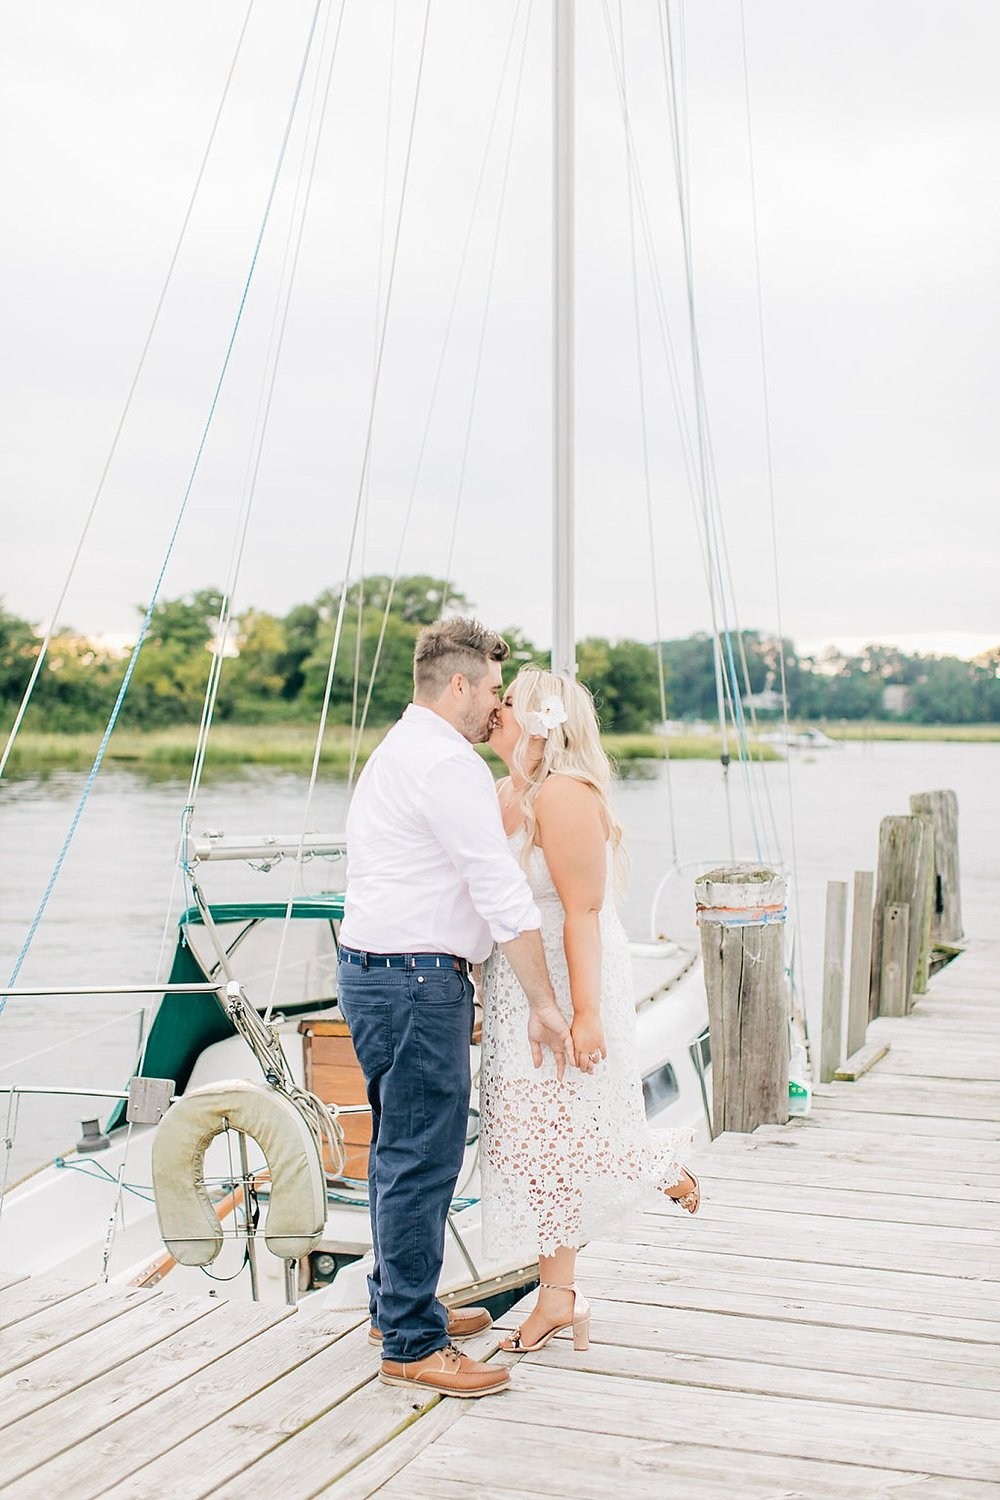 An Engagement Session by the Water in Family Boatyard with Puppy by Magdalena Studios_0007.jpg